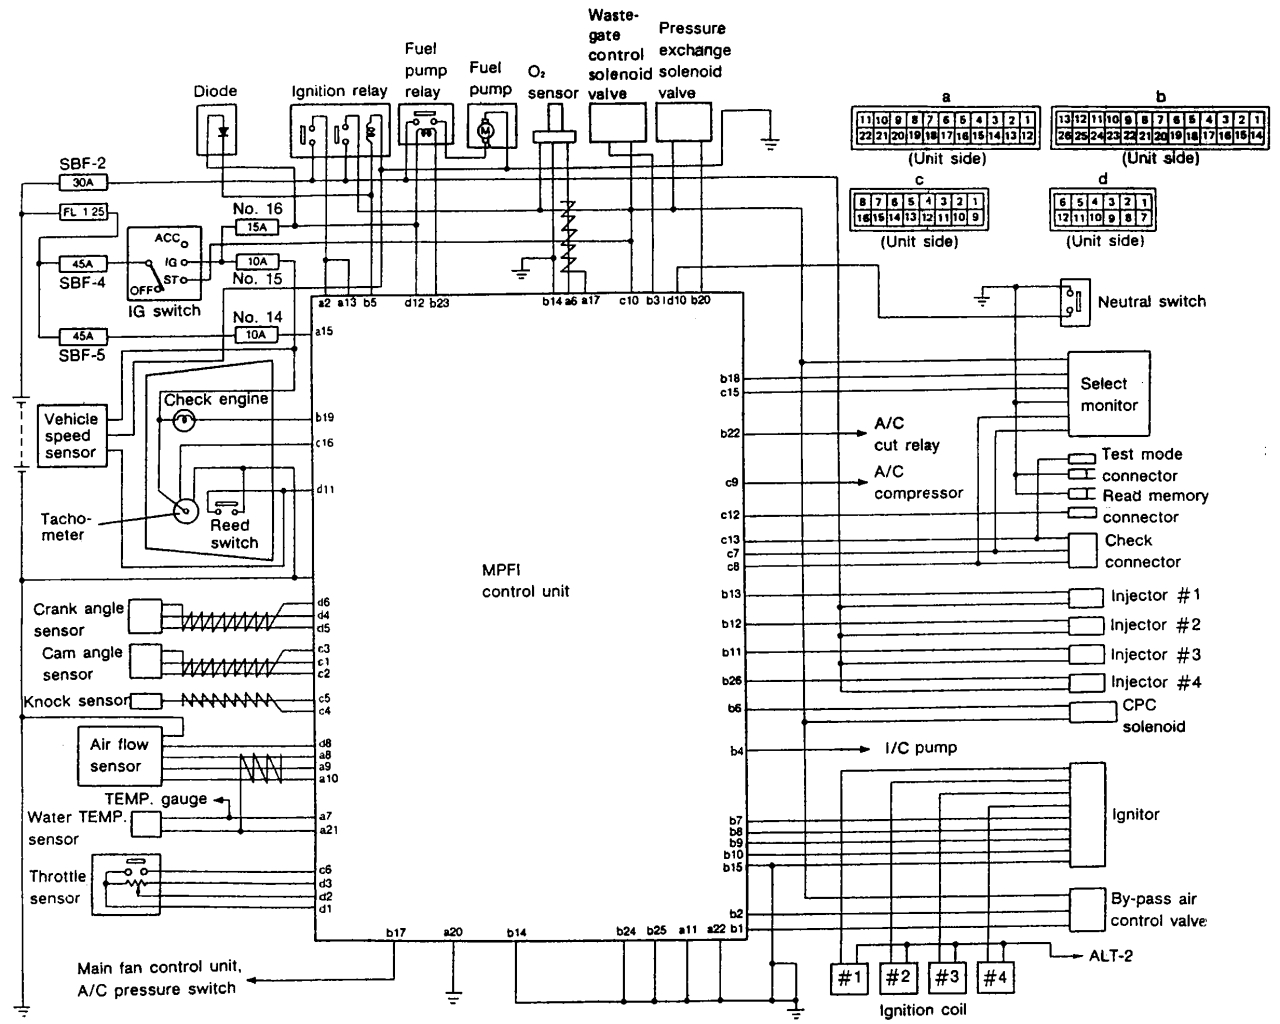 2006 subaru legacy engine diagram data wiring diagram Electrical Wiring